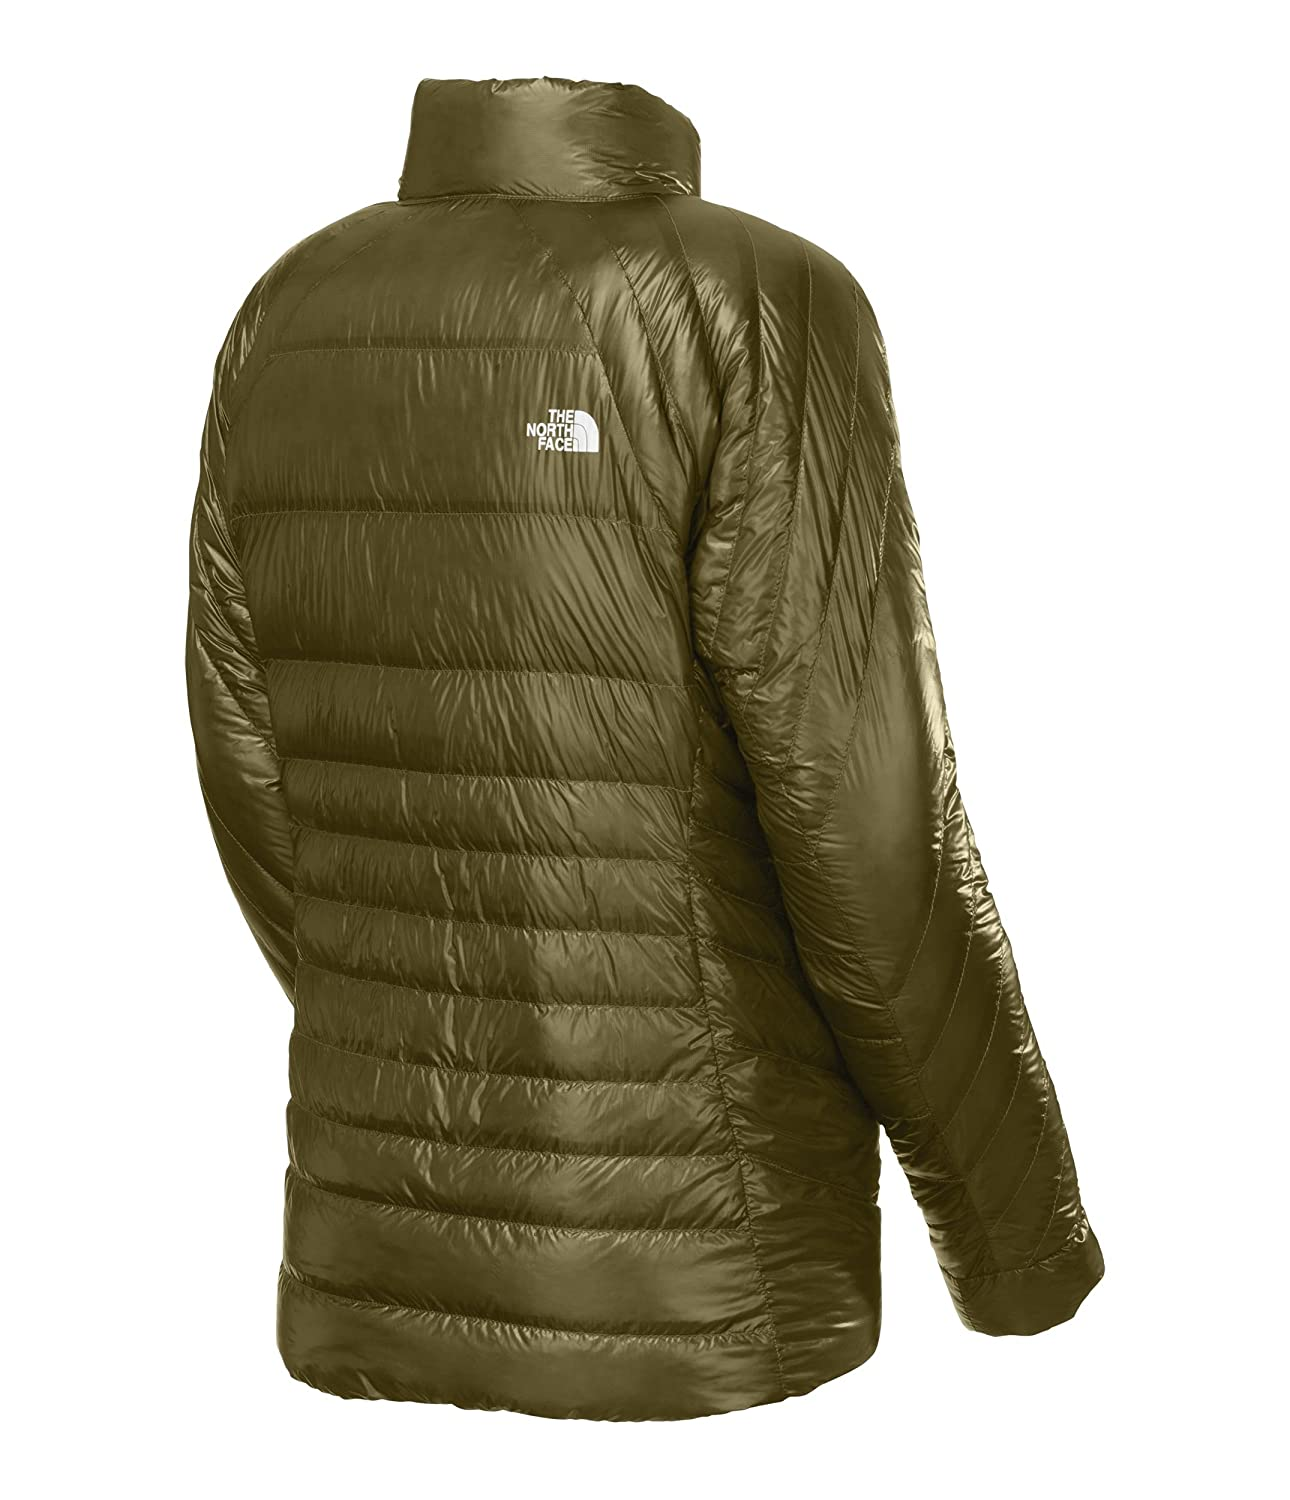 25a939af7 Amazon.com: The North Face Women's Super Diez 850 Fill Down Jacket ...